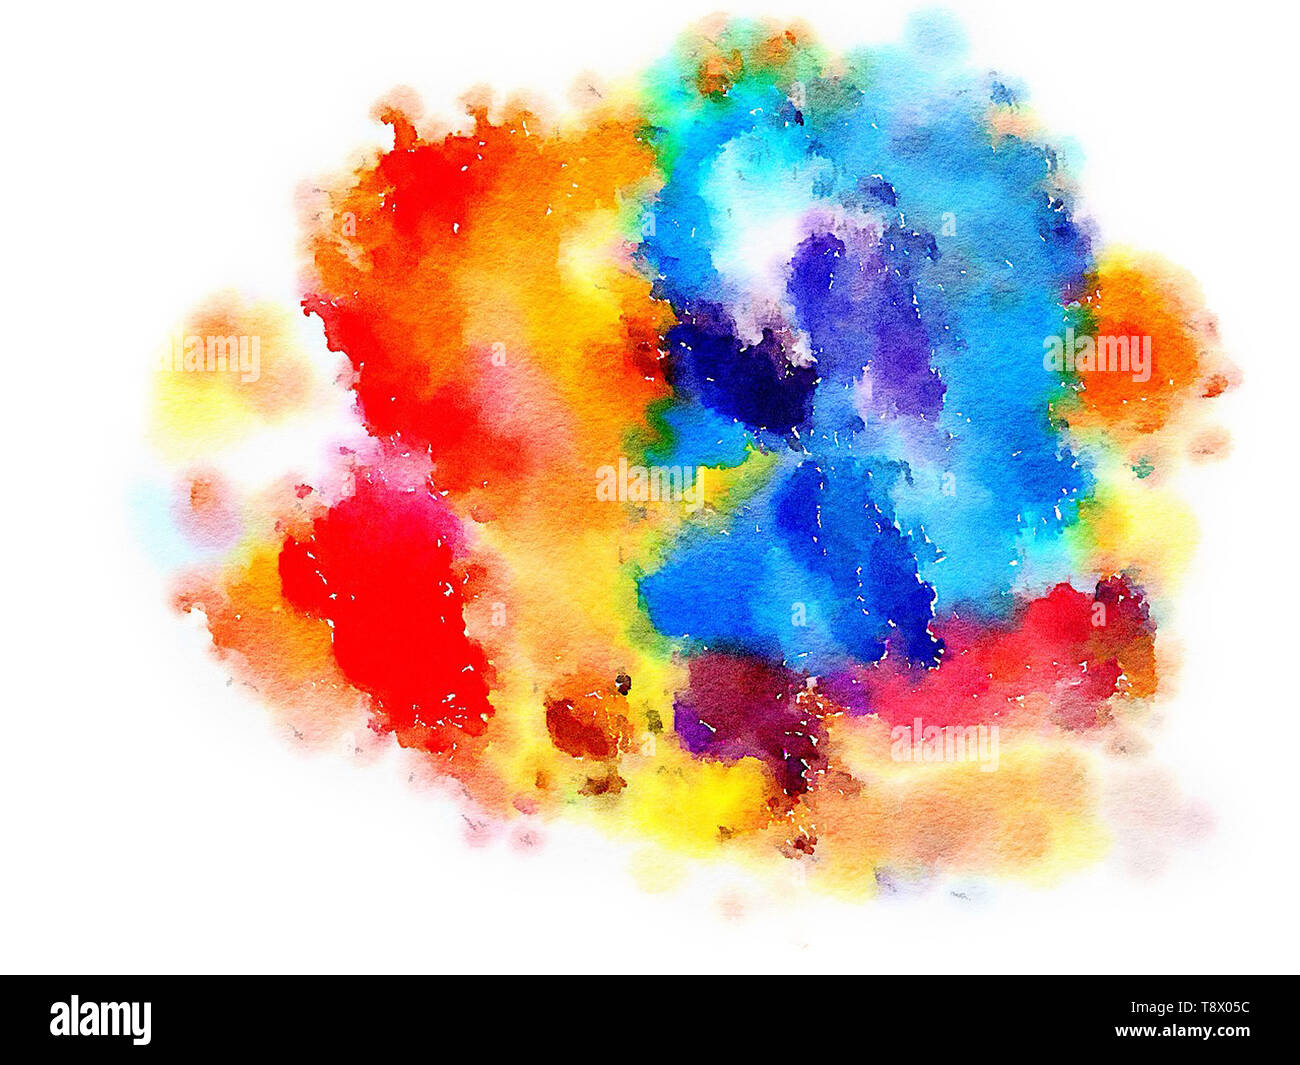 Colorful Watercolor Hand Painted Art Illustration Abstract